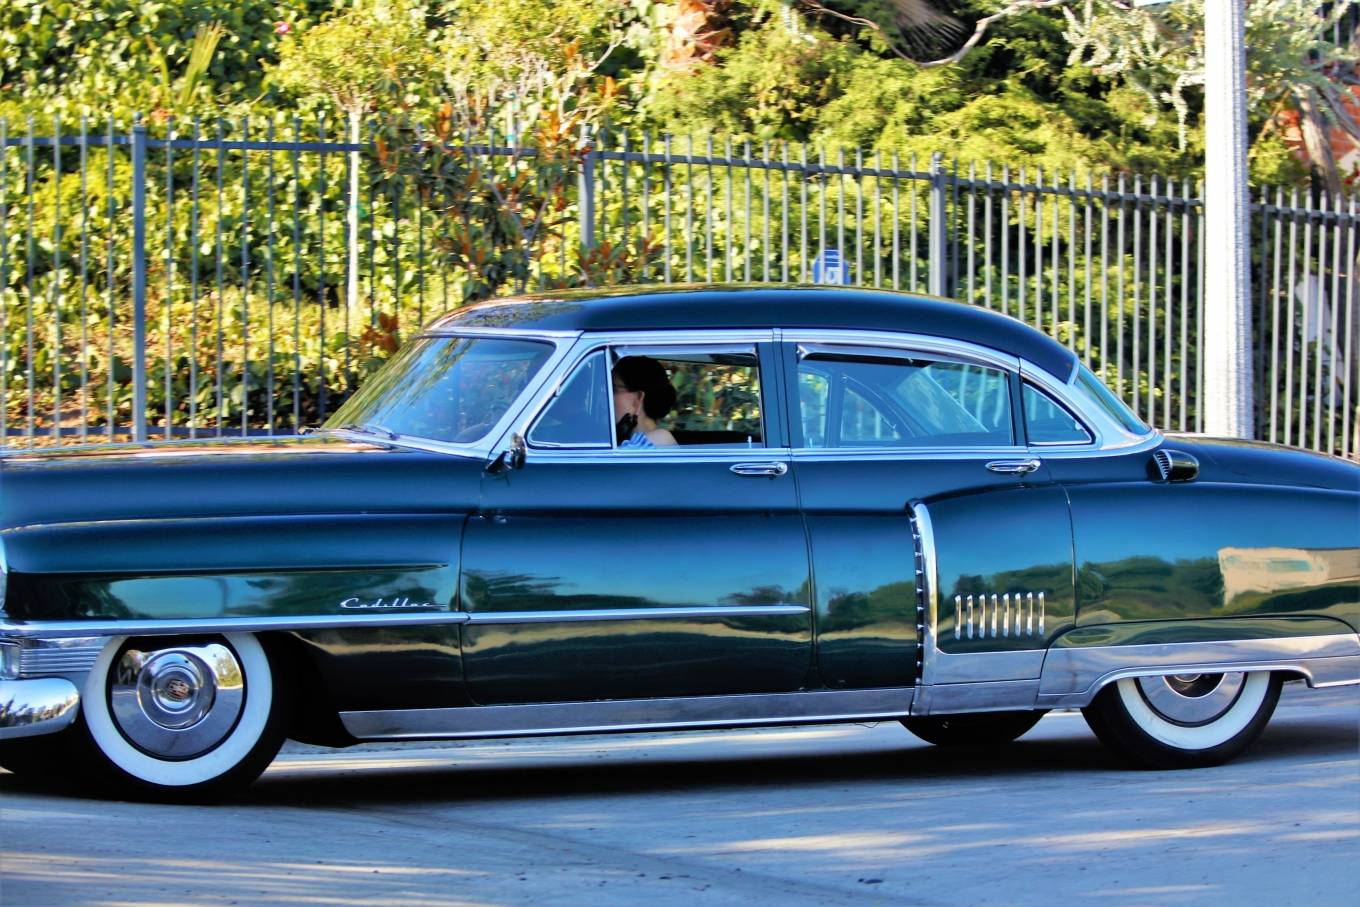 Dita Von Teese 2020 : Dita Von Teese – Takes her clean classic Chevy for a cruise in Los Angeles-04